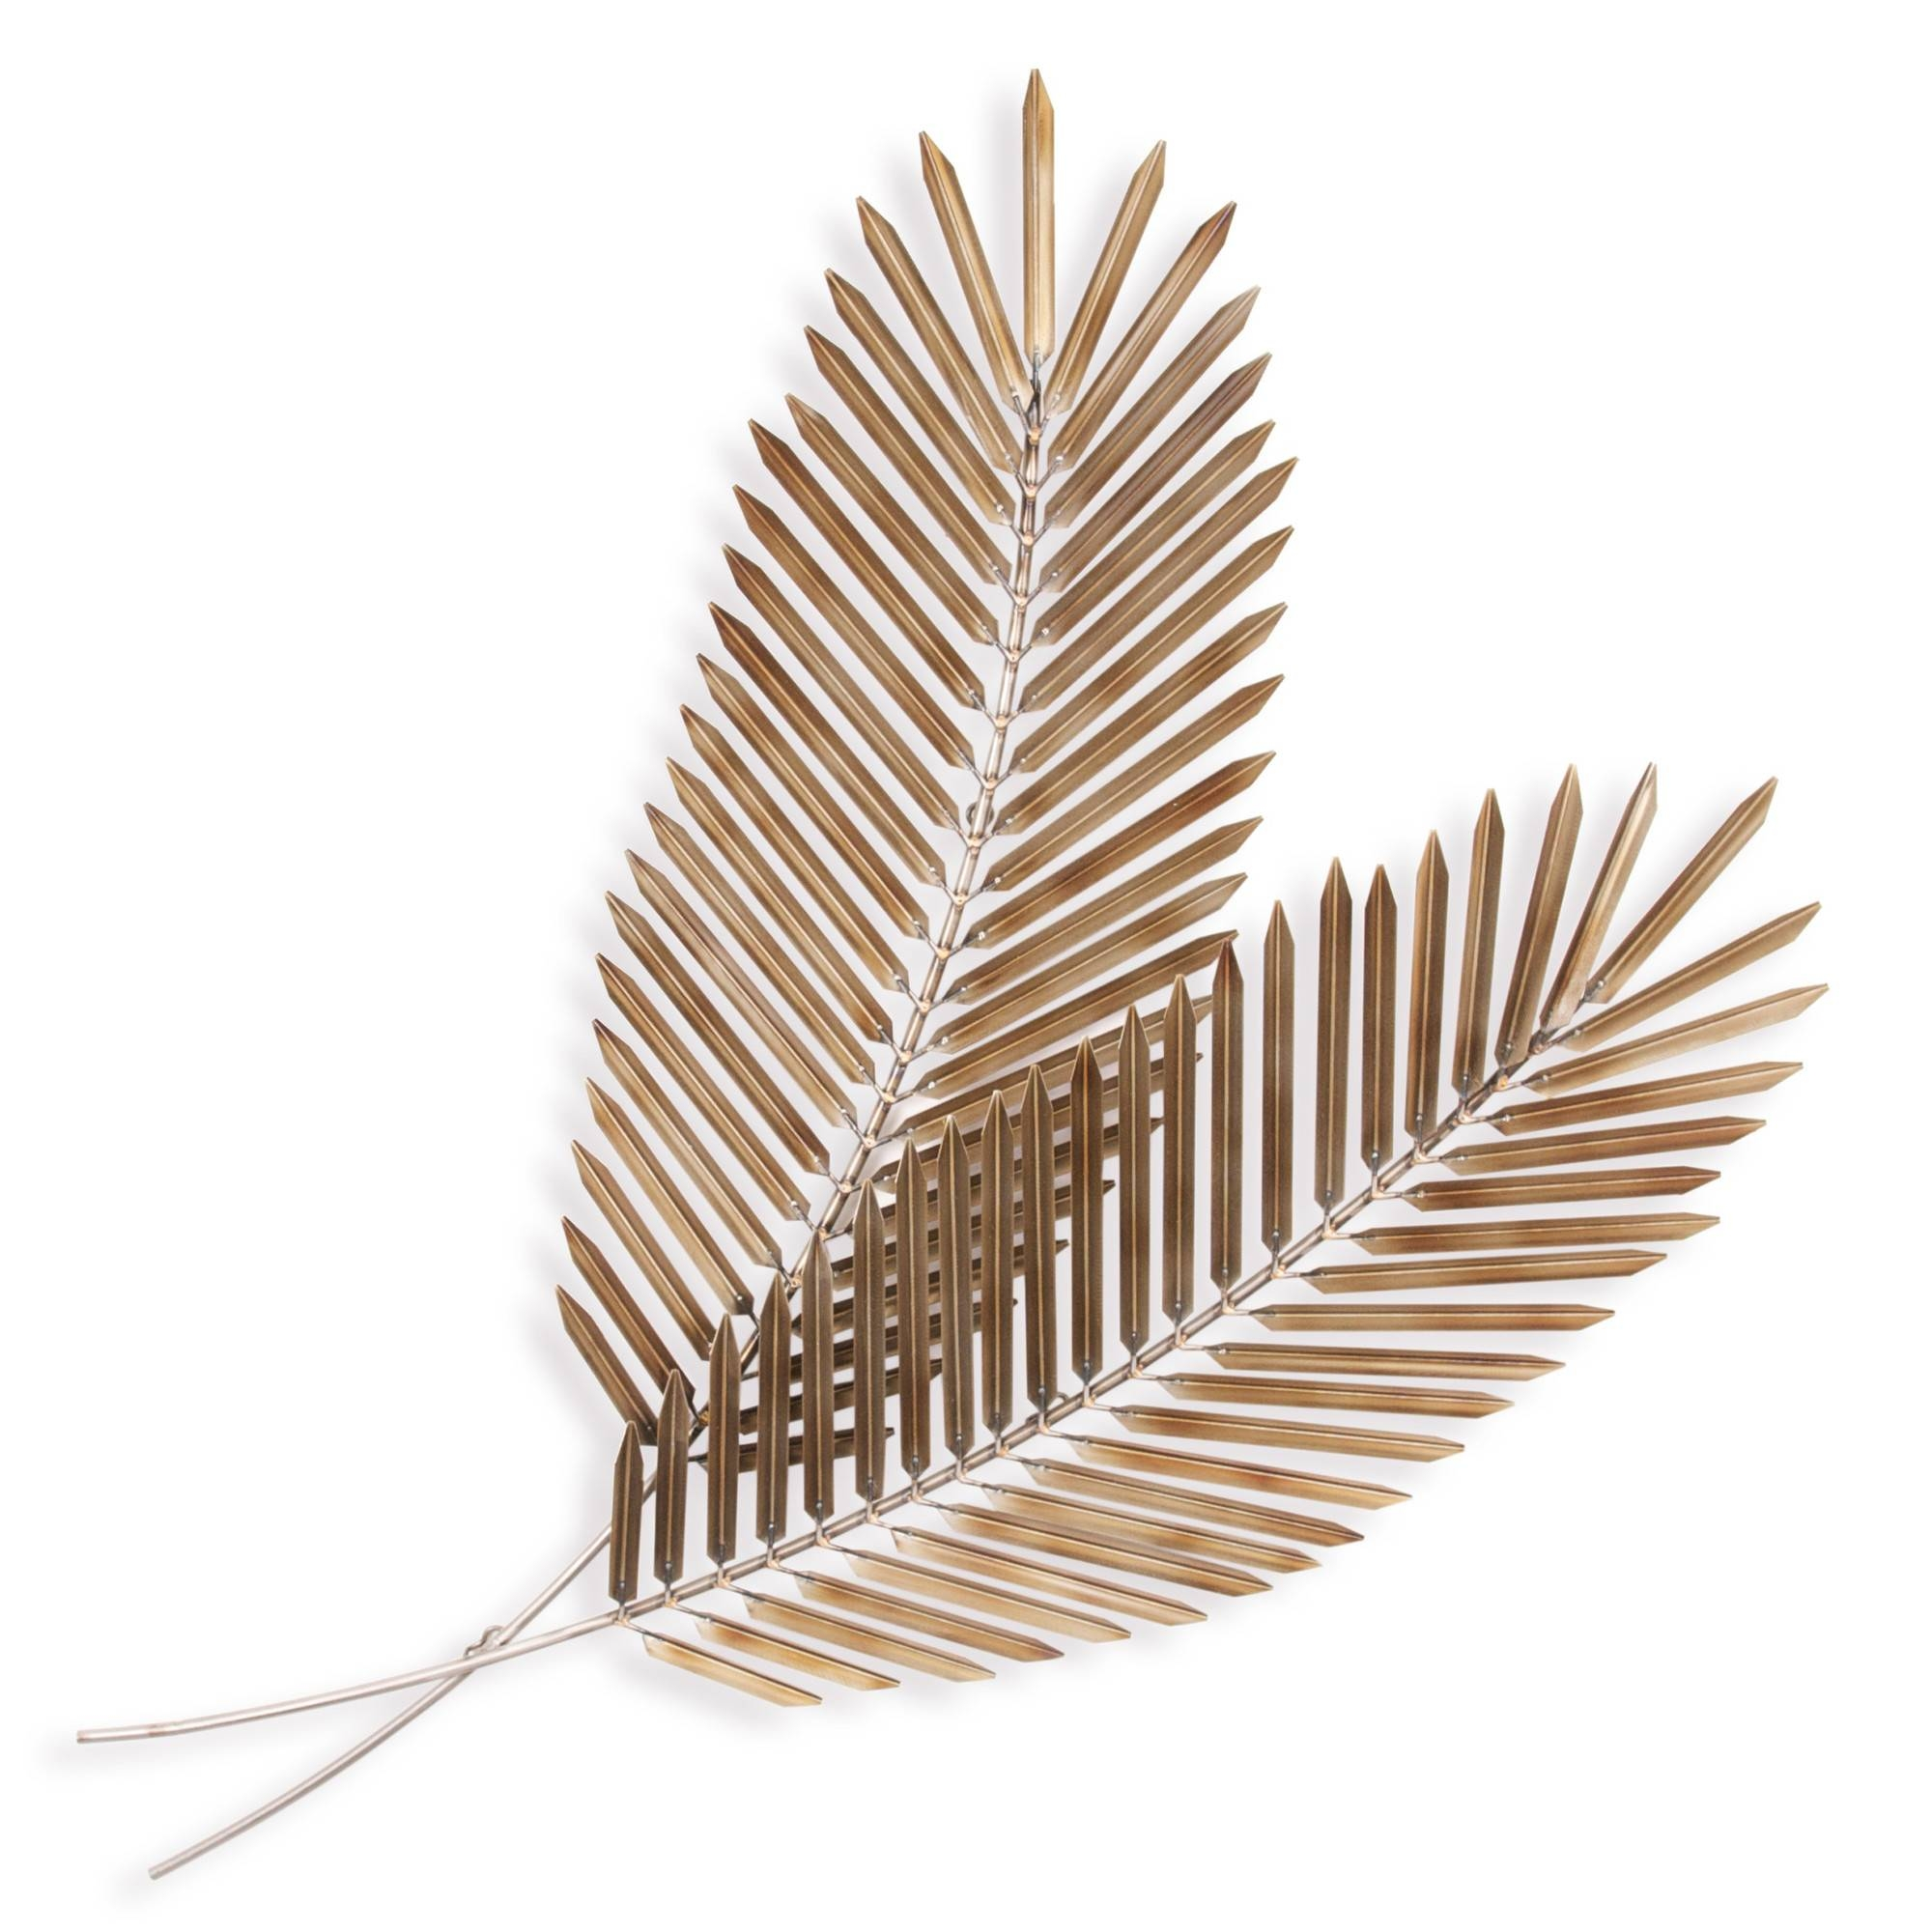 Palm Leaves Pair – Floral Metal Wall Art With Regard To Recent Leaf Metal Wall Art (View 14 of 20)